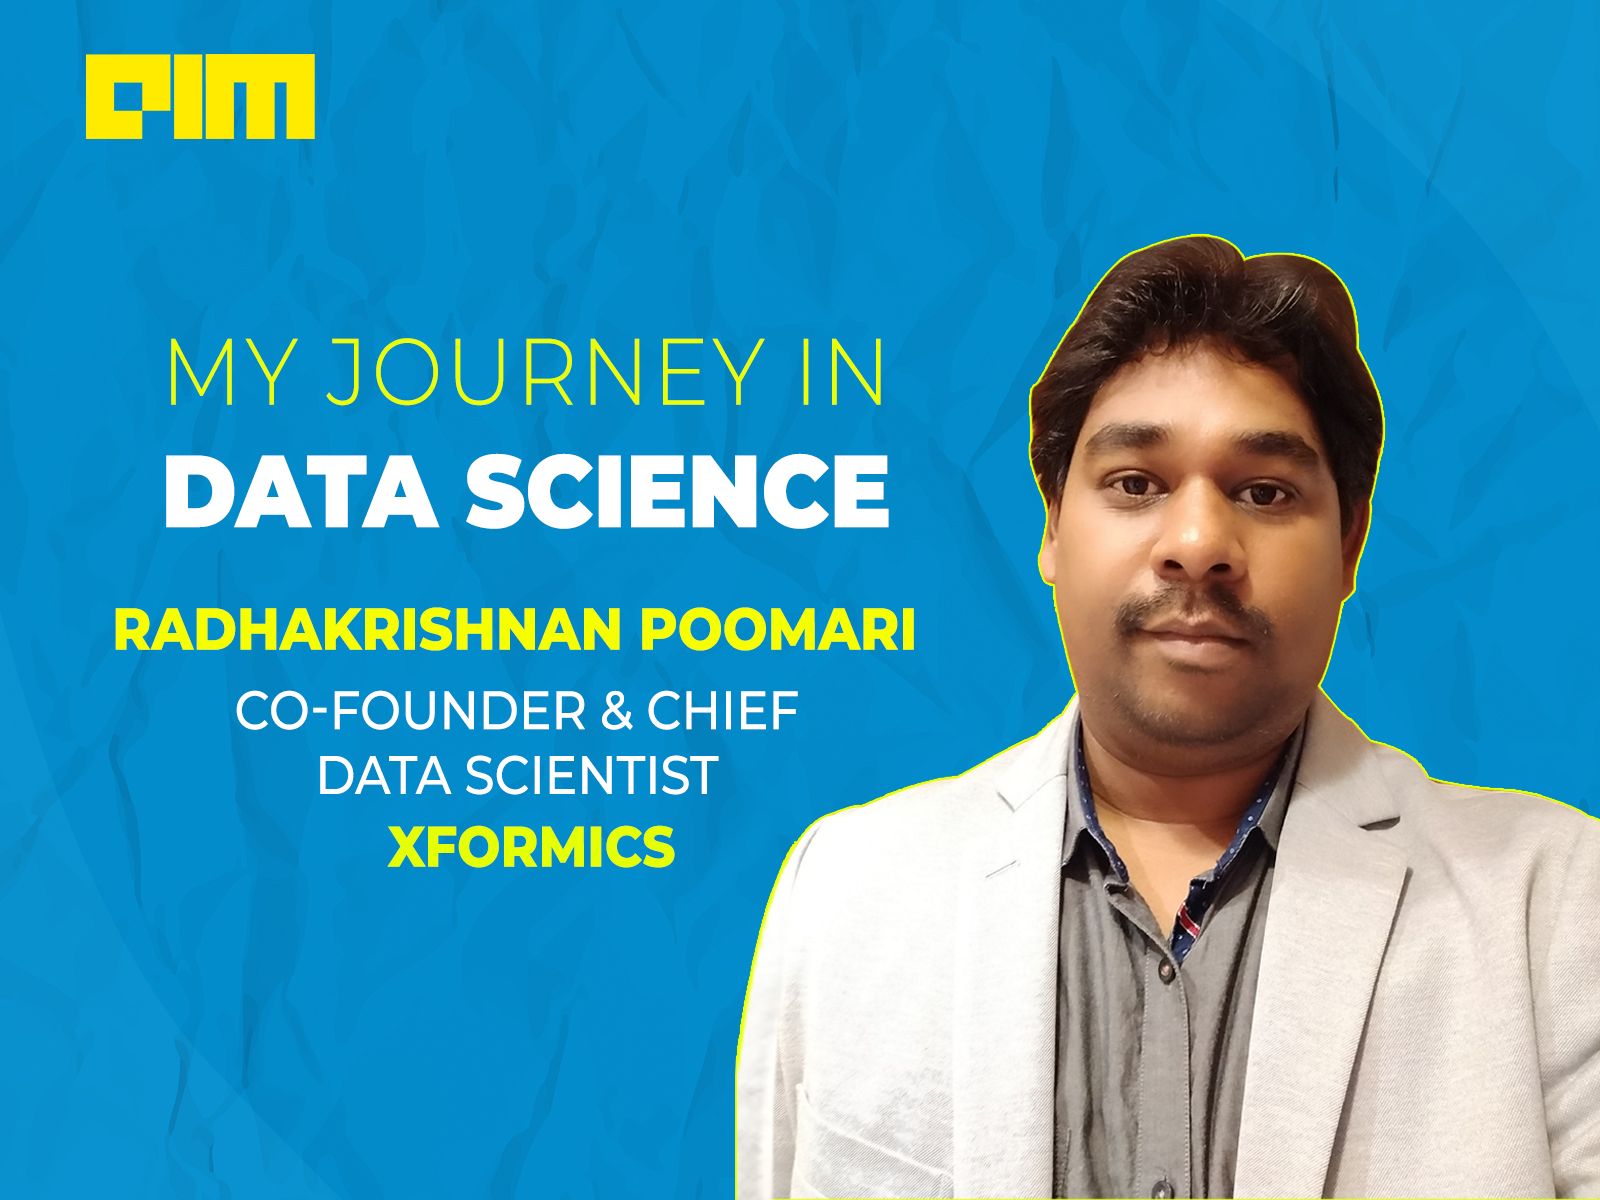 Radhakrishnan Journey In Data Science